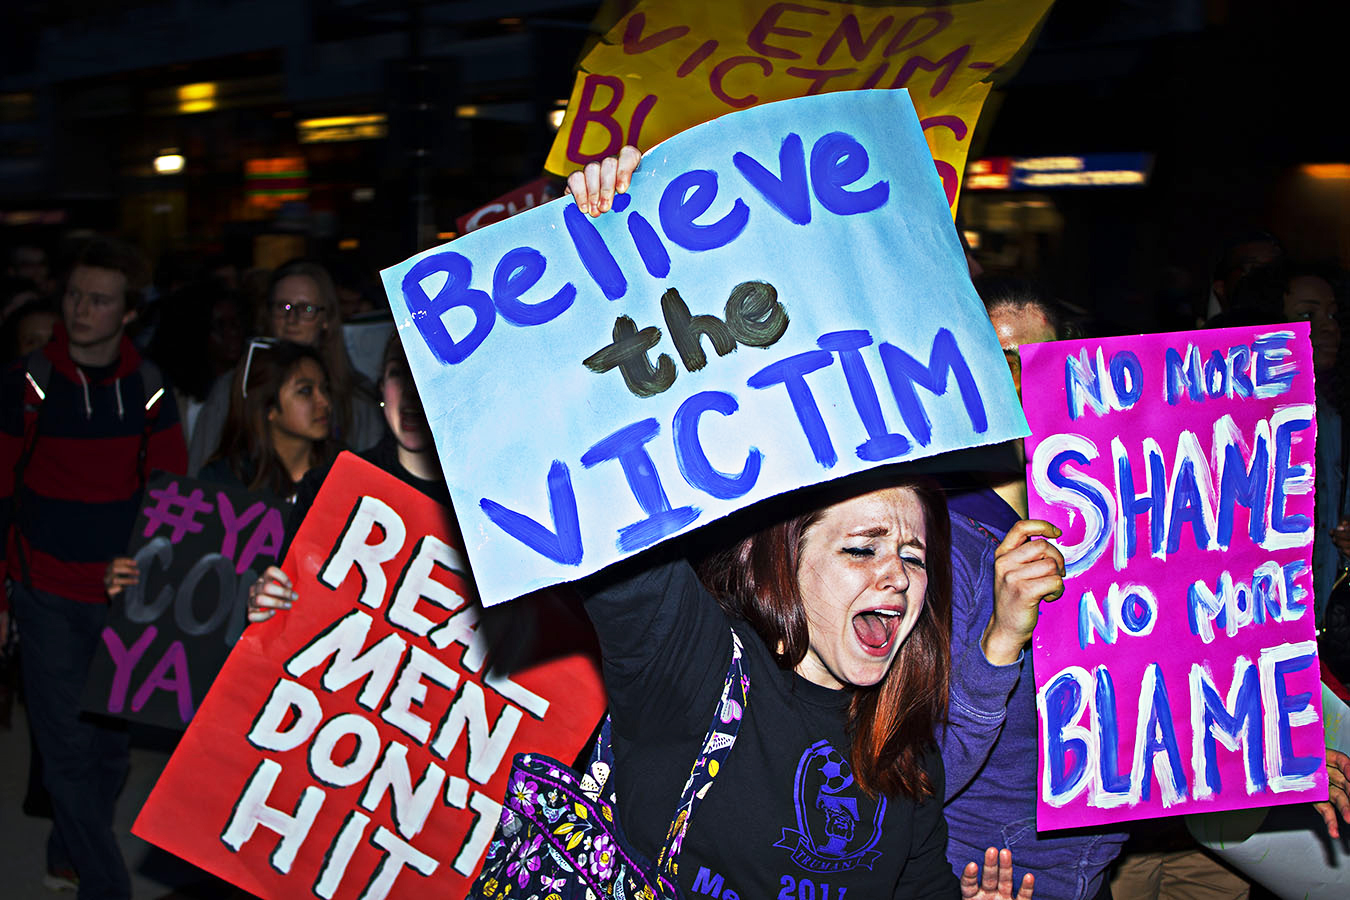 take back the night. Protest at the U of Penn